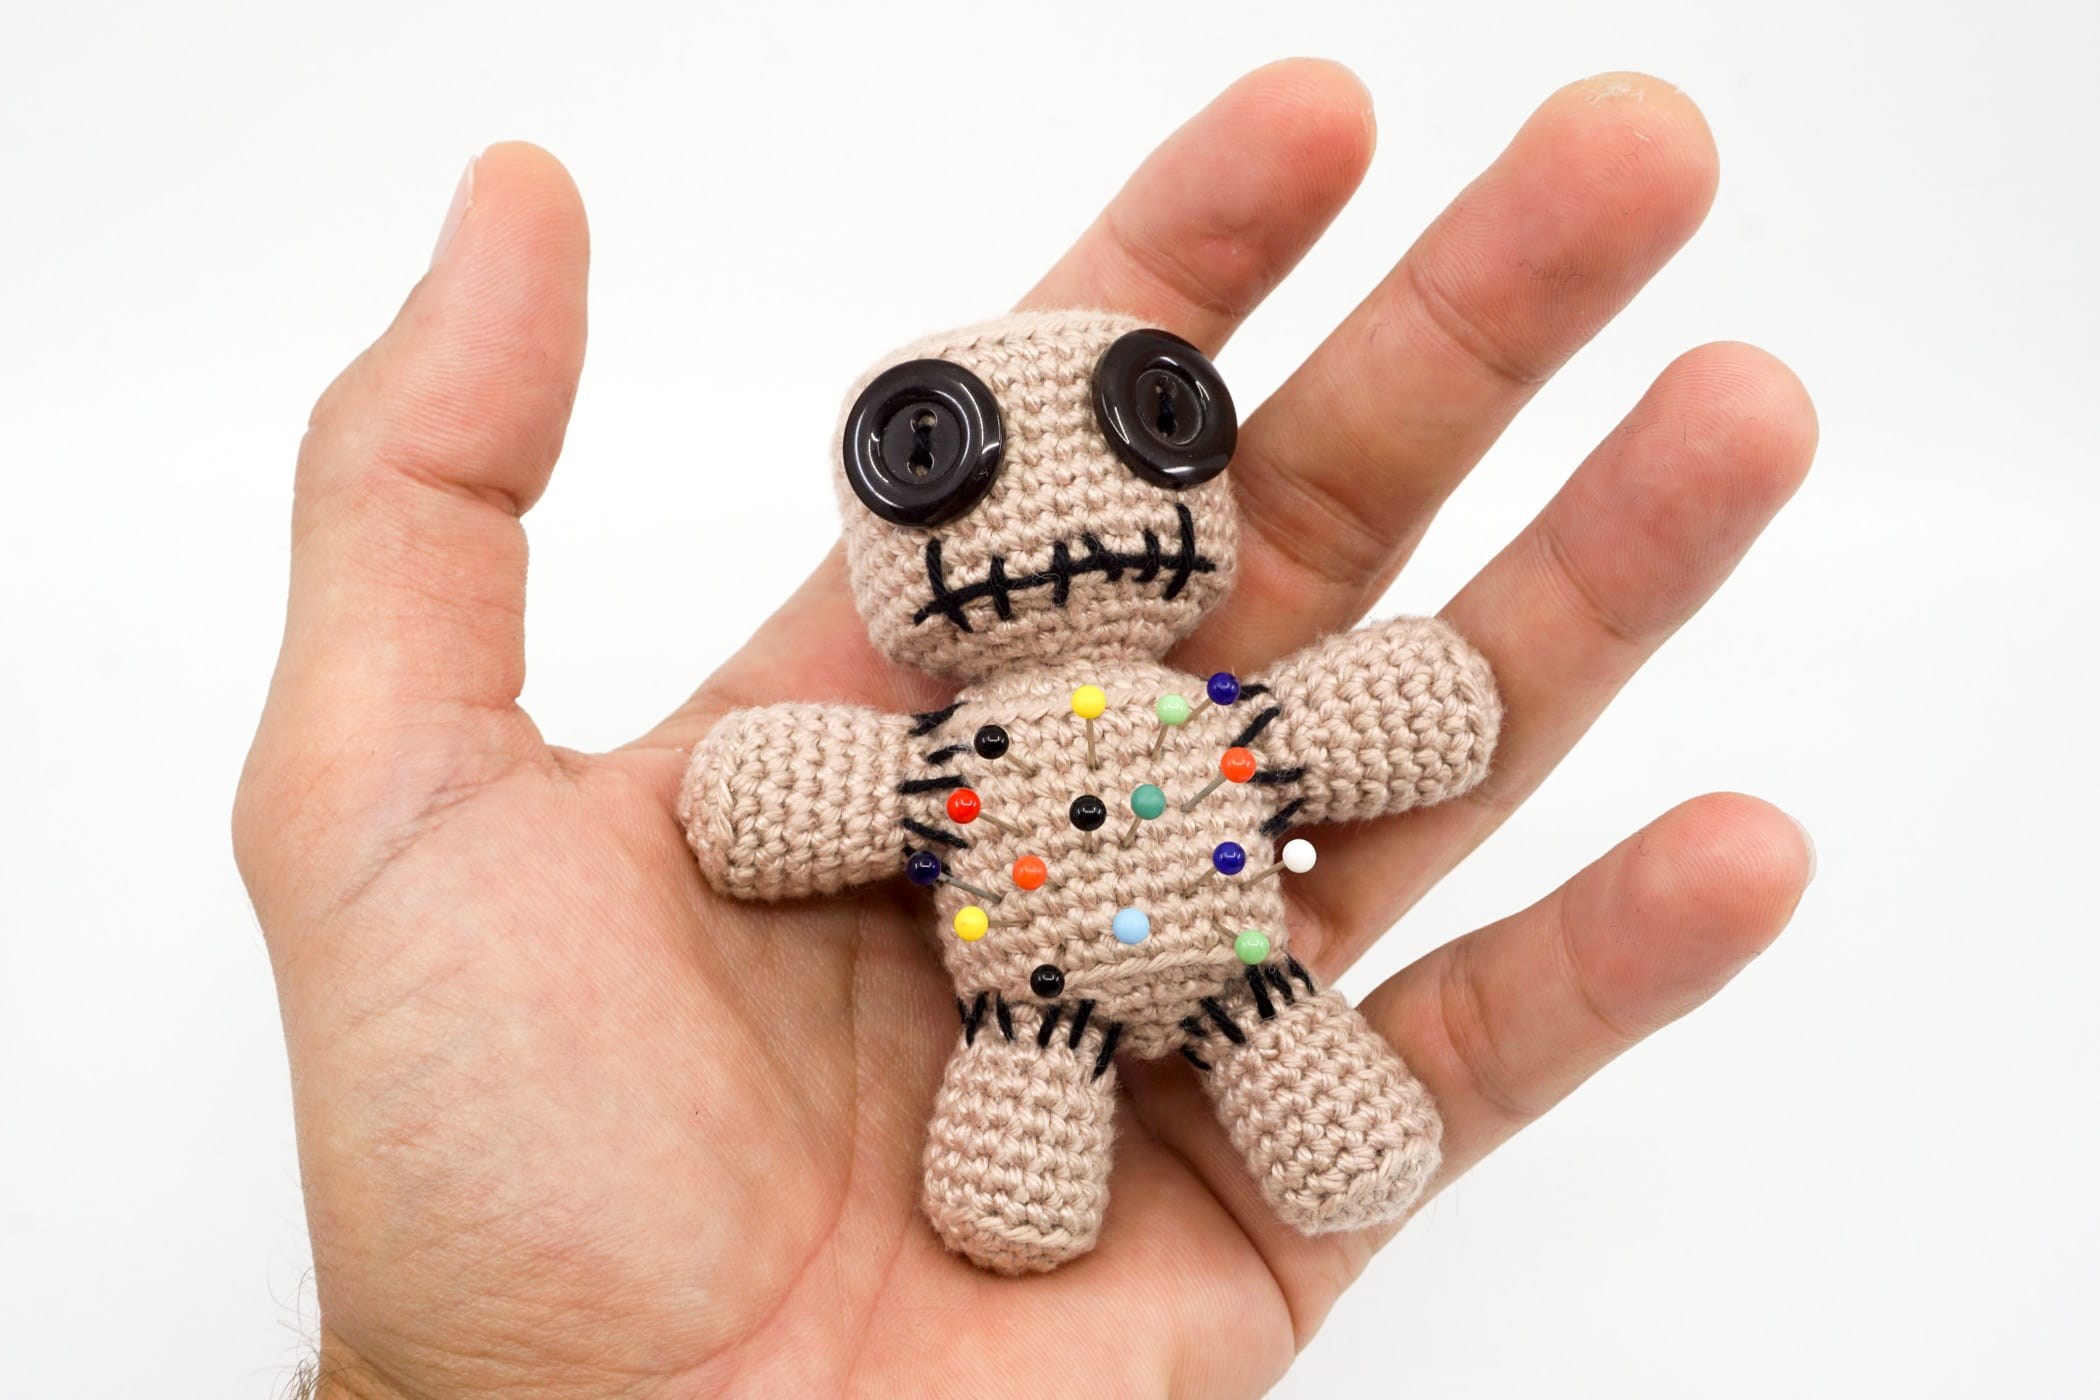 Crochet Amigurumi Voodoo Doll : Voodoo Doll Pincushion Crochet Pattern - Supergurumi